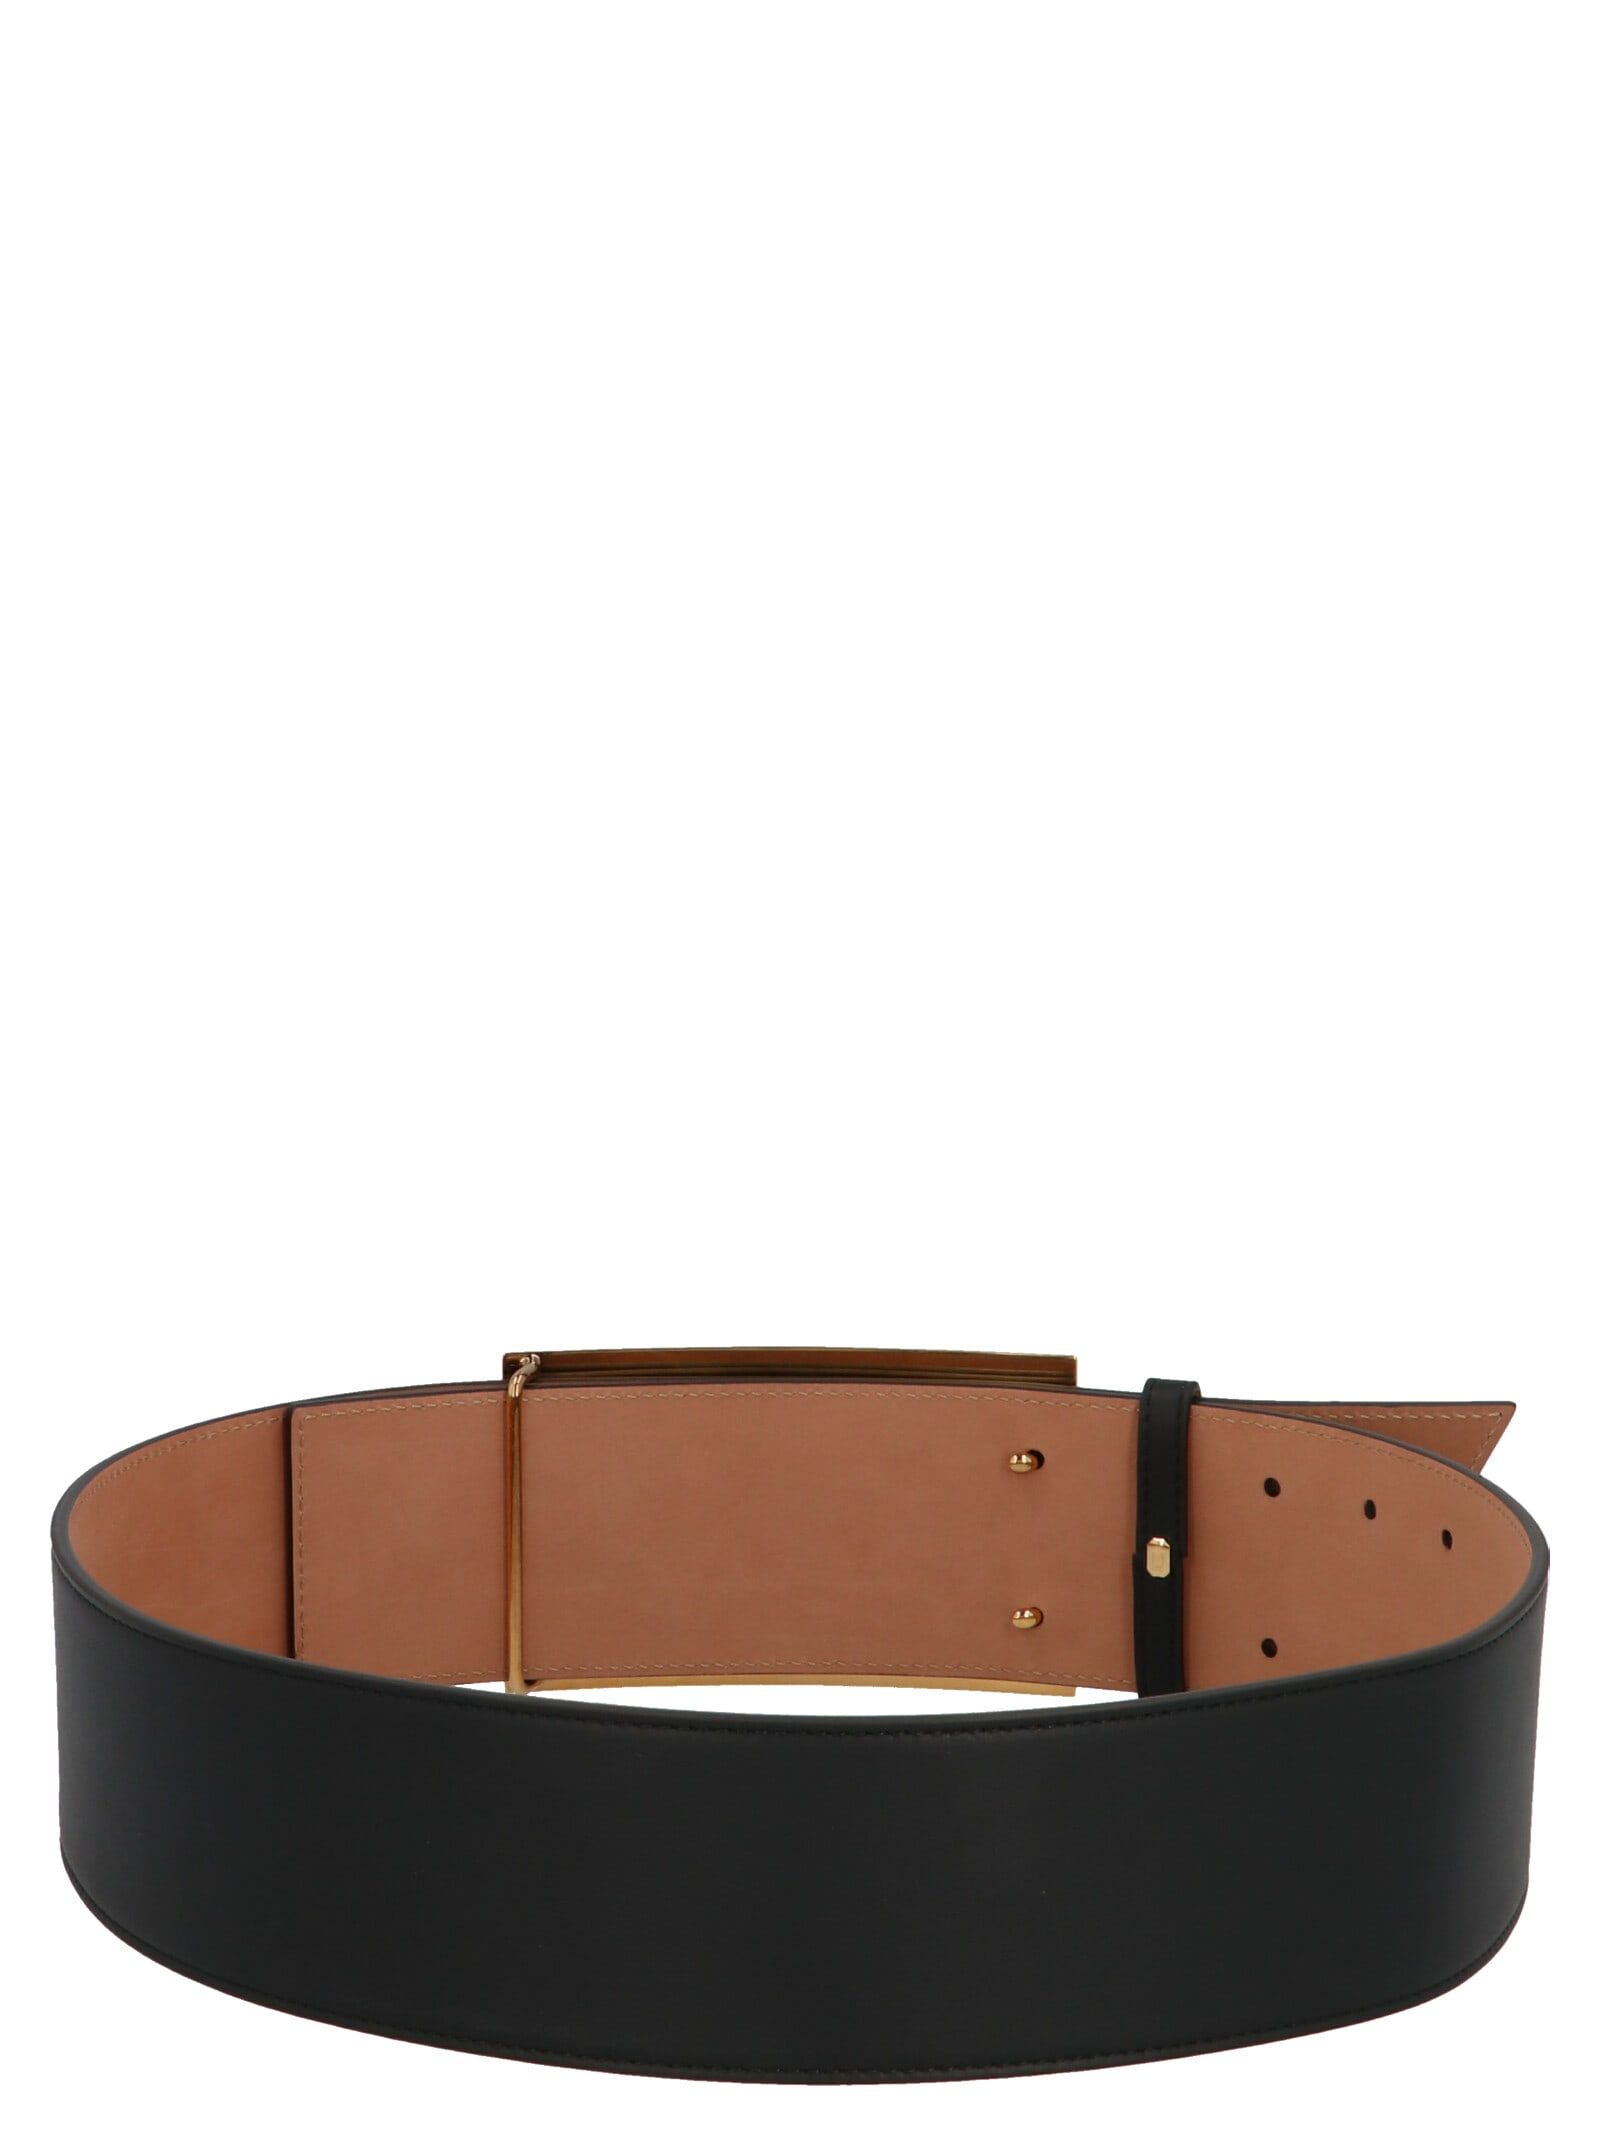 Fendi Belts Monticello Always Like A Sale Shop the collection of women's fendi belts, made with fine leather. best price on the market at monticello fendi belt